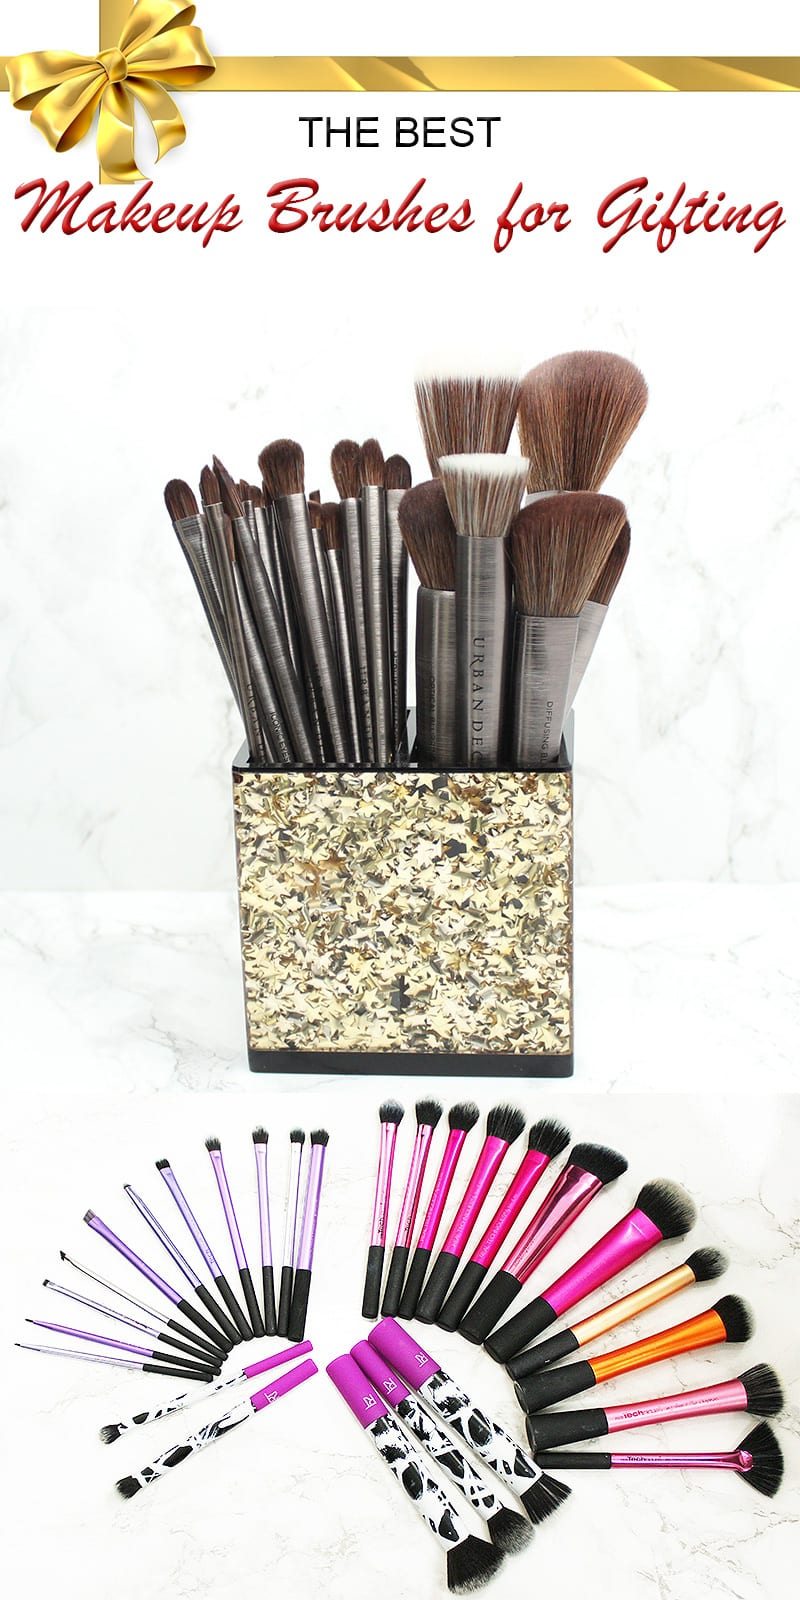 Best Cruelty Free Makeup Brushes for Gifting - Cruelty Free and Vegan